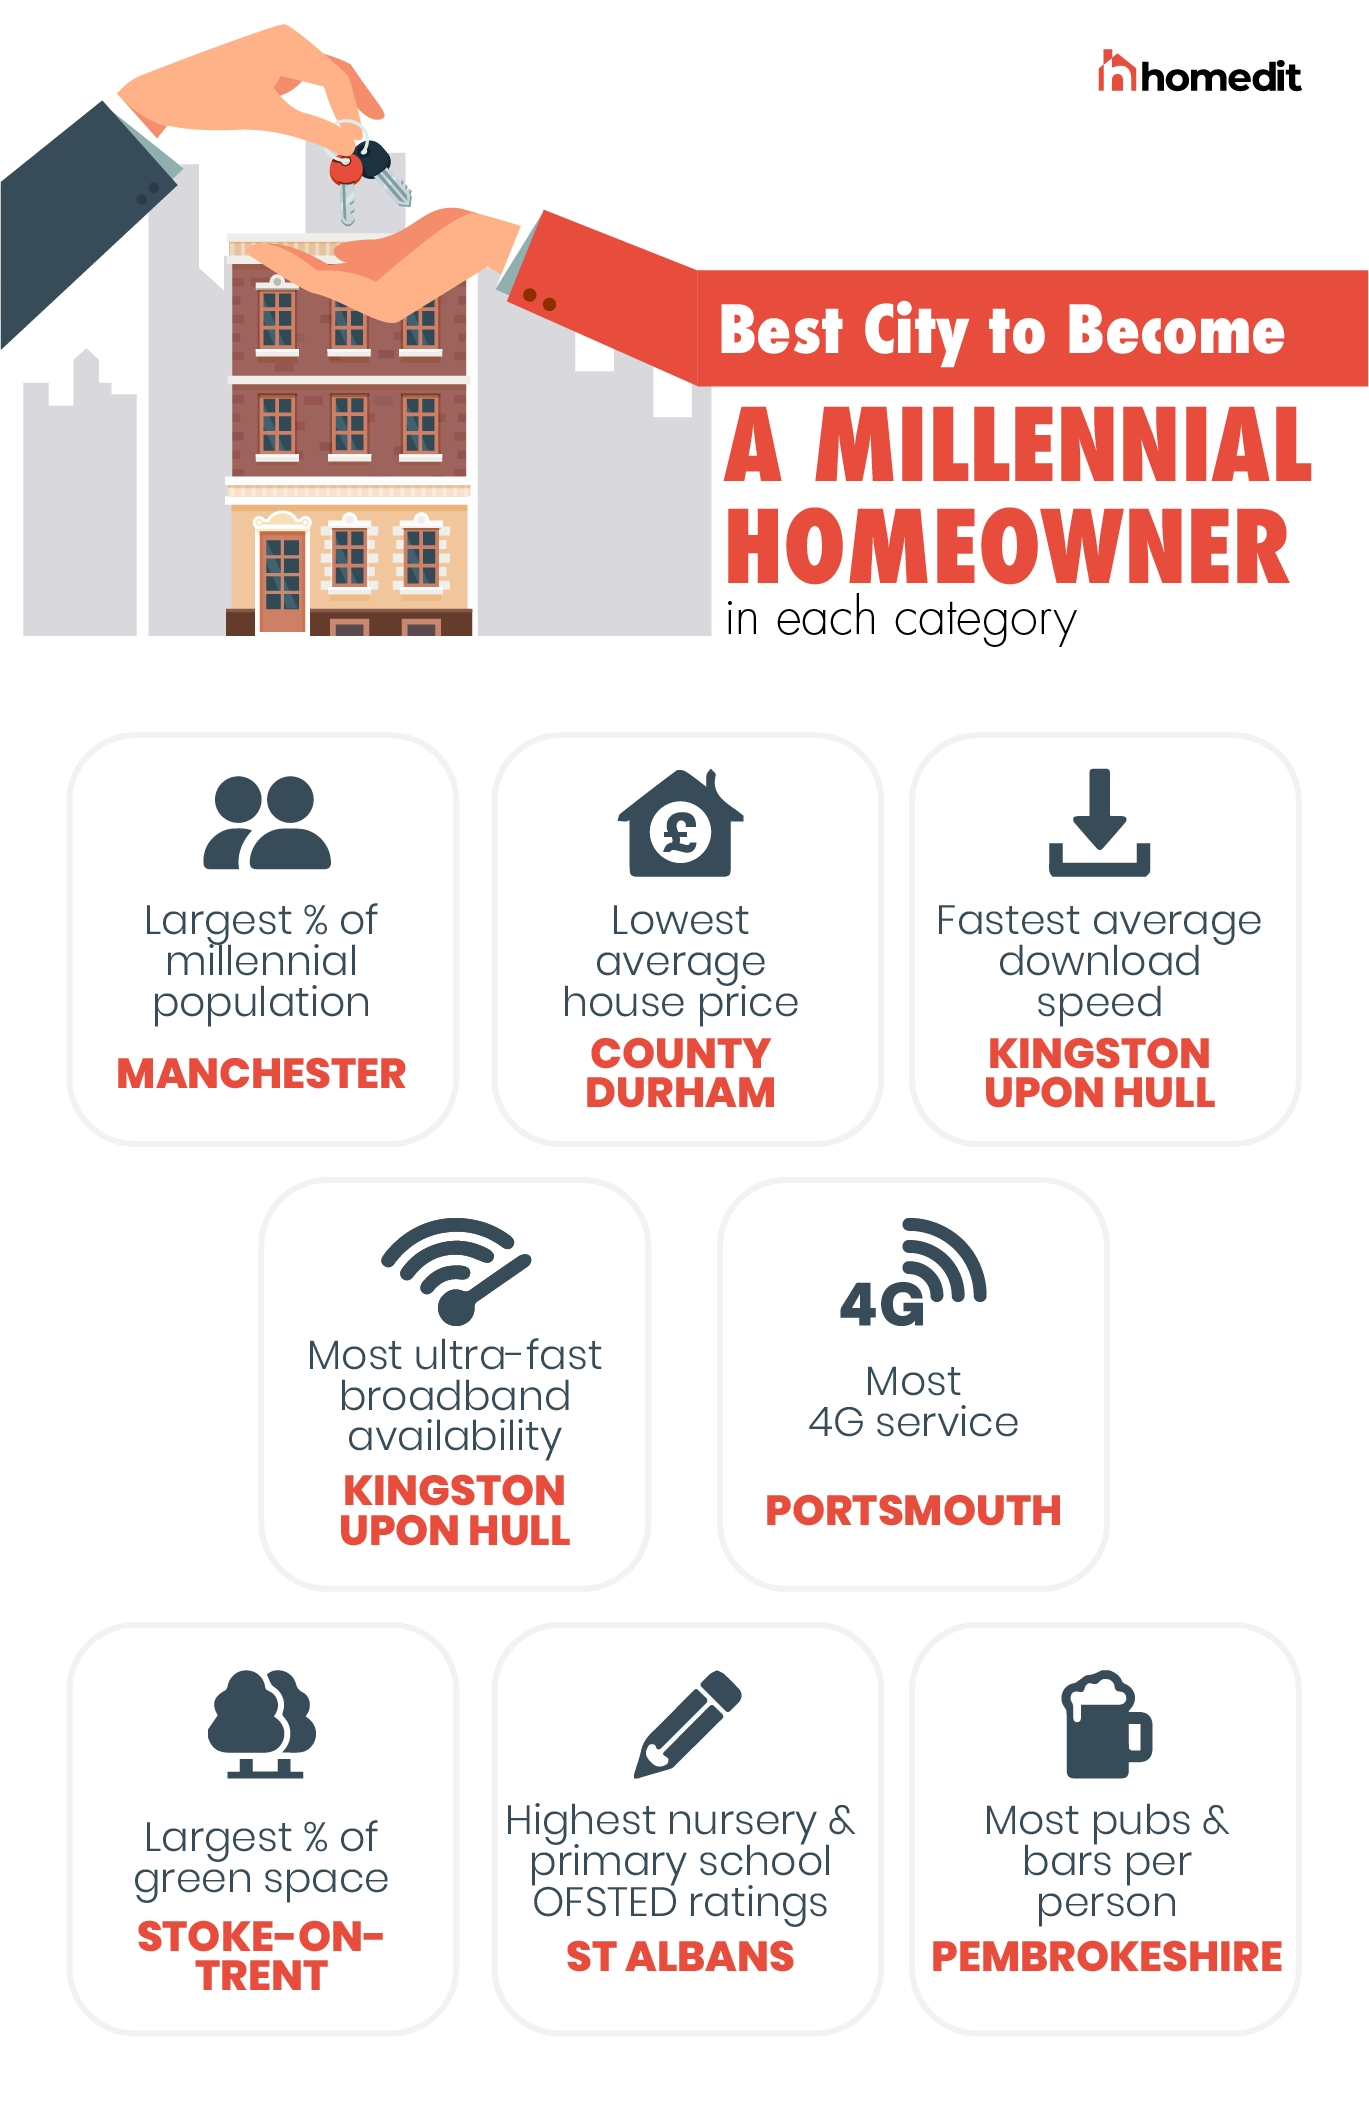 The Best Cities for Each Category for Millennial Homeowners in the UK